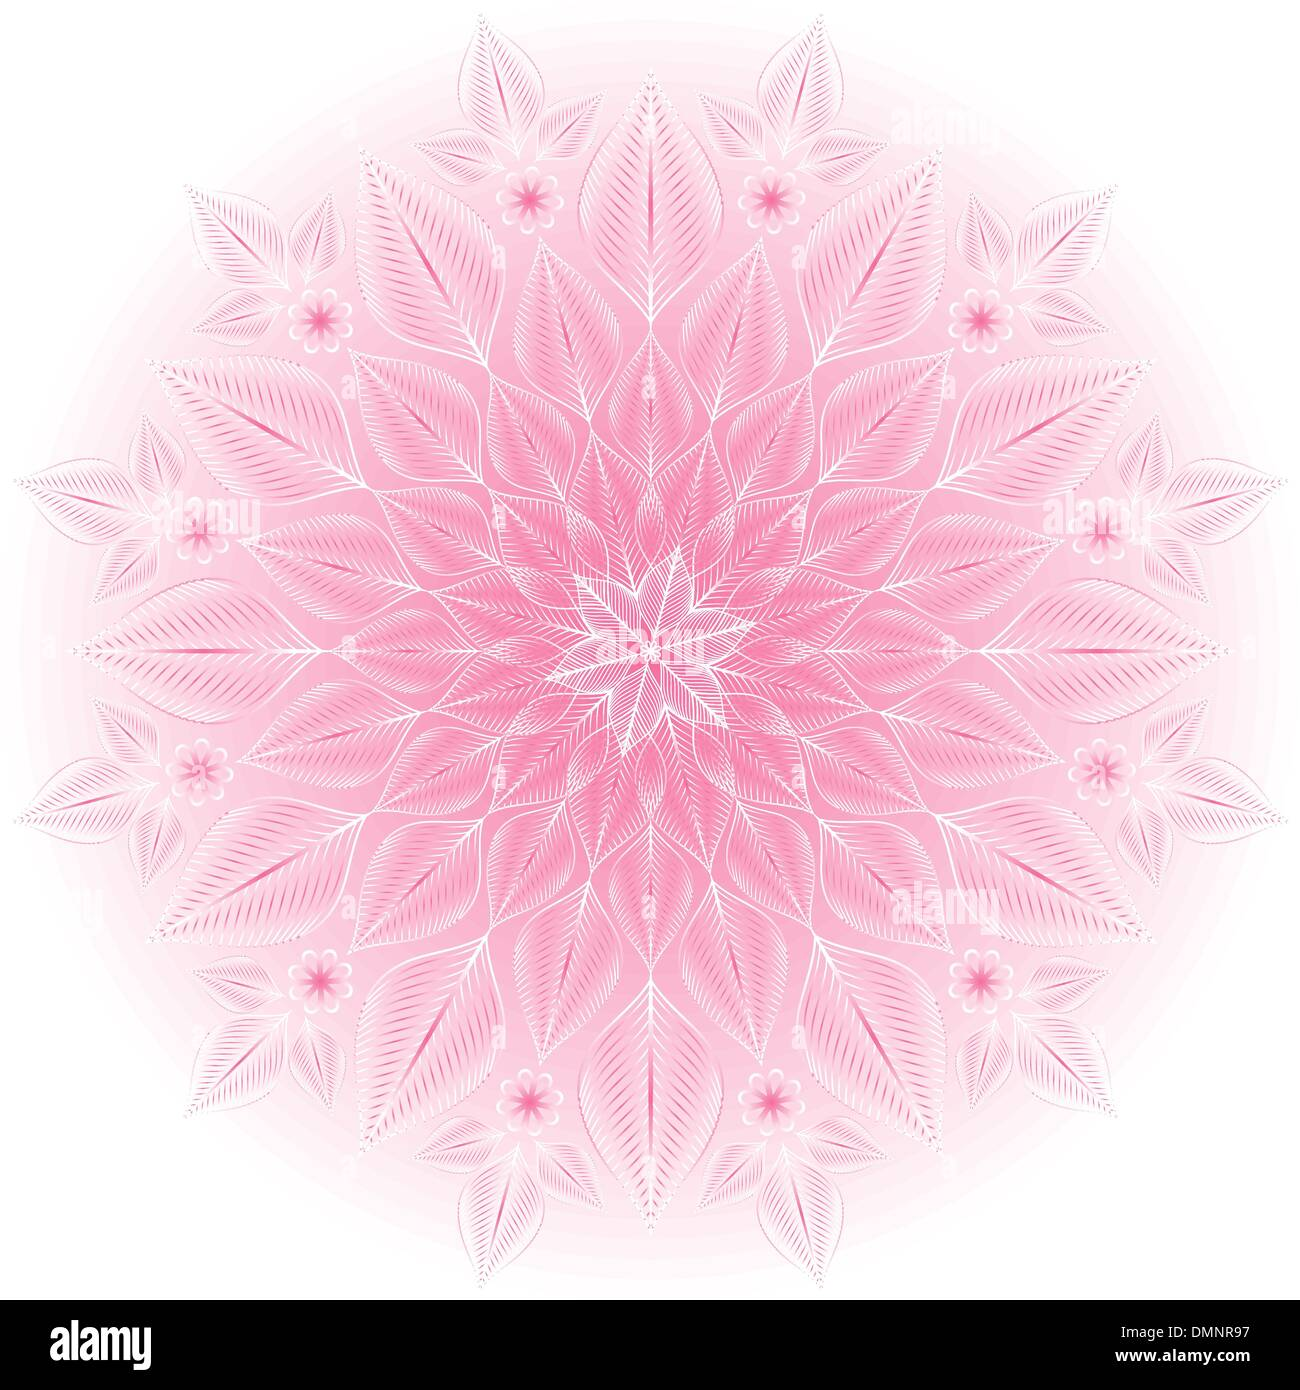 Gentle pink-white frame - Stock Image